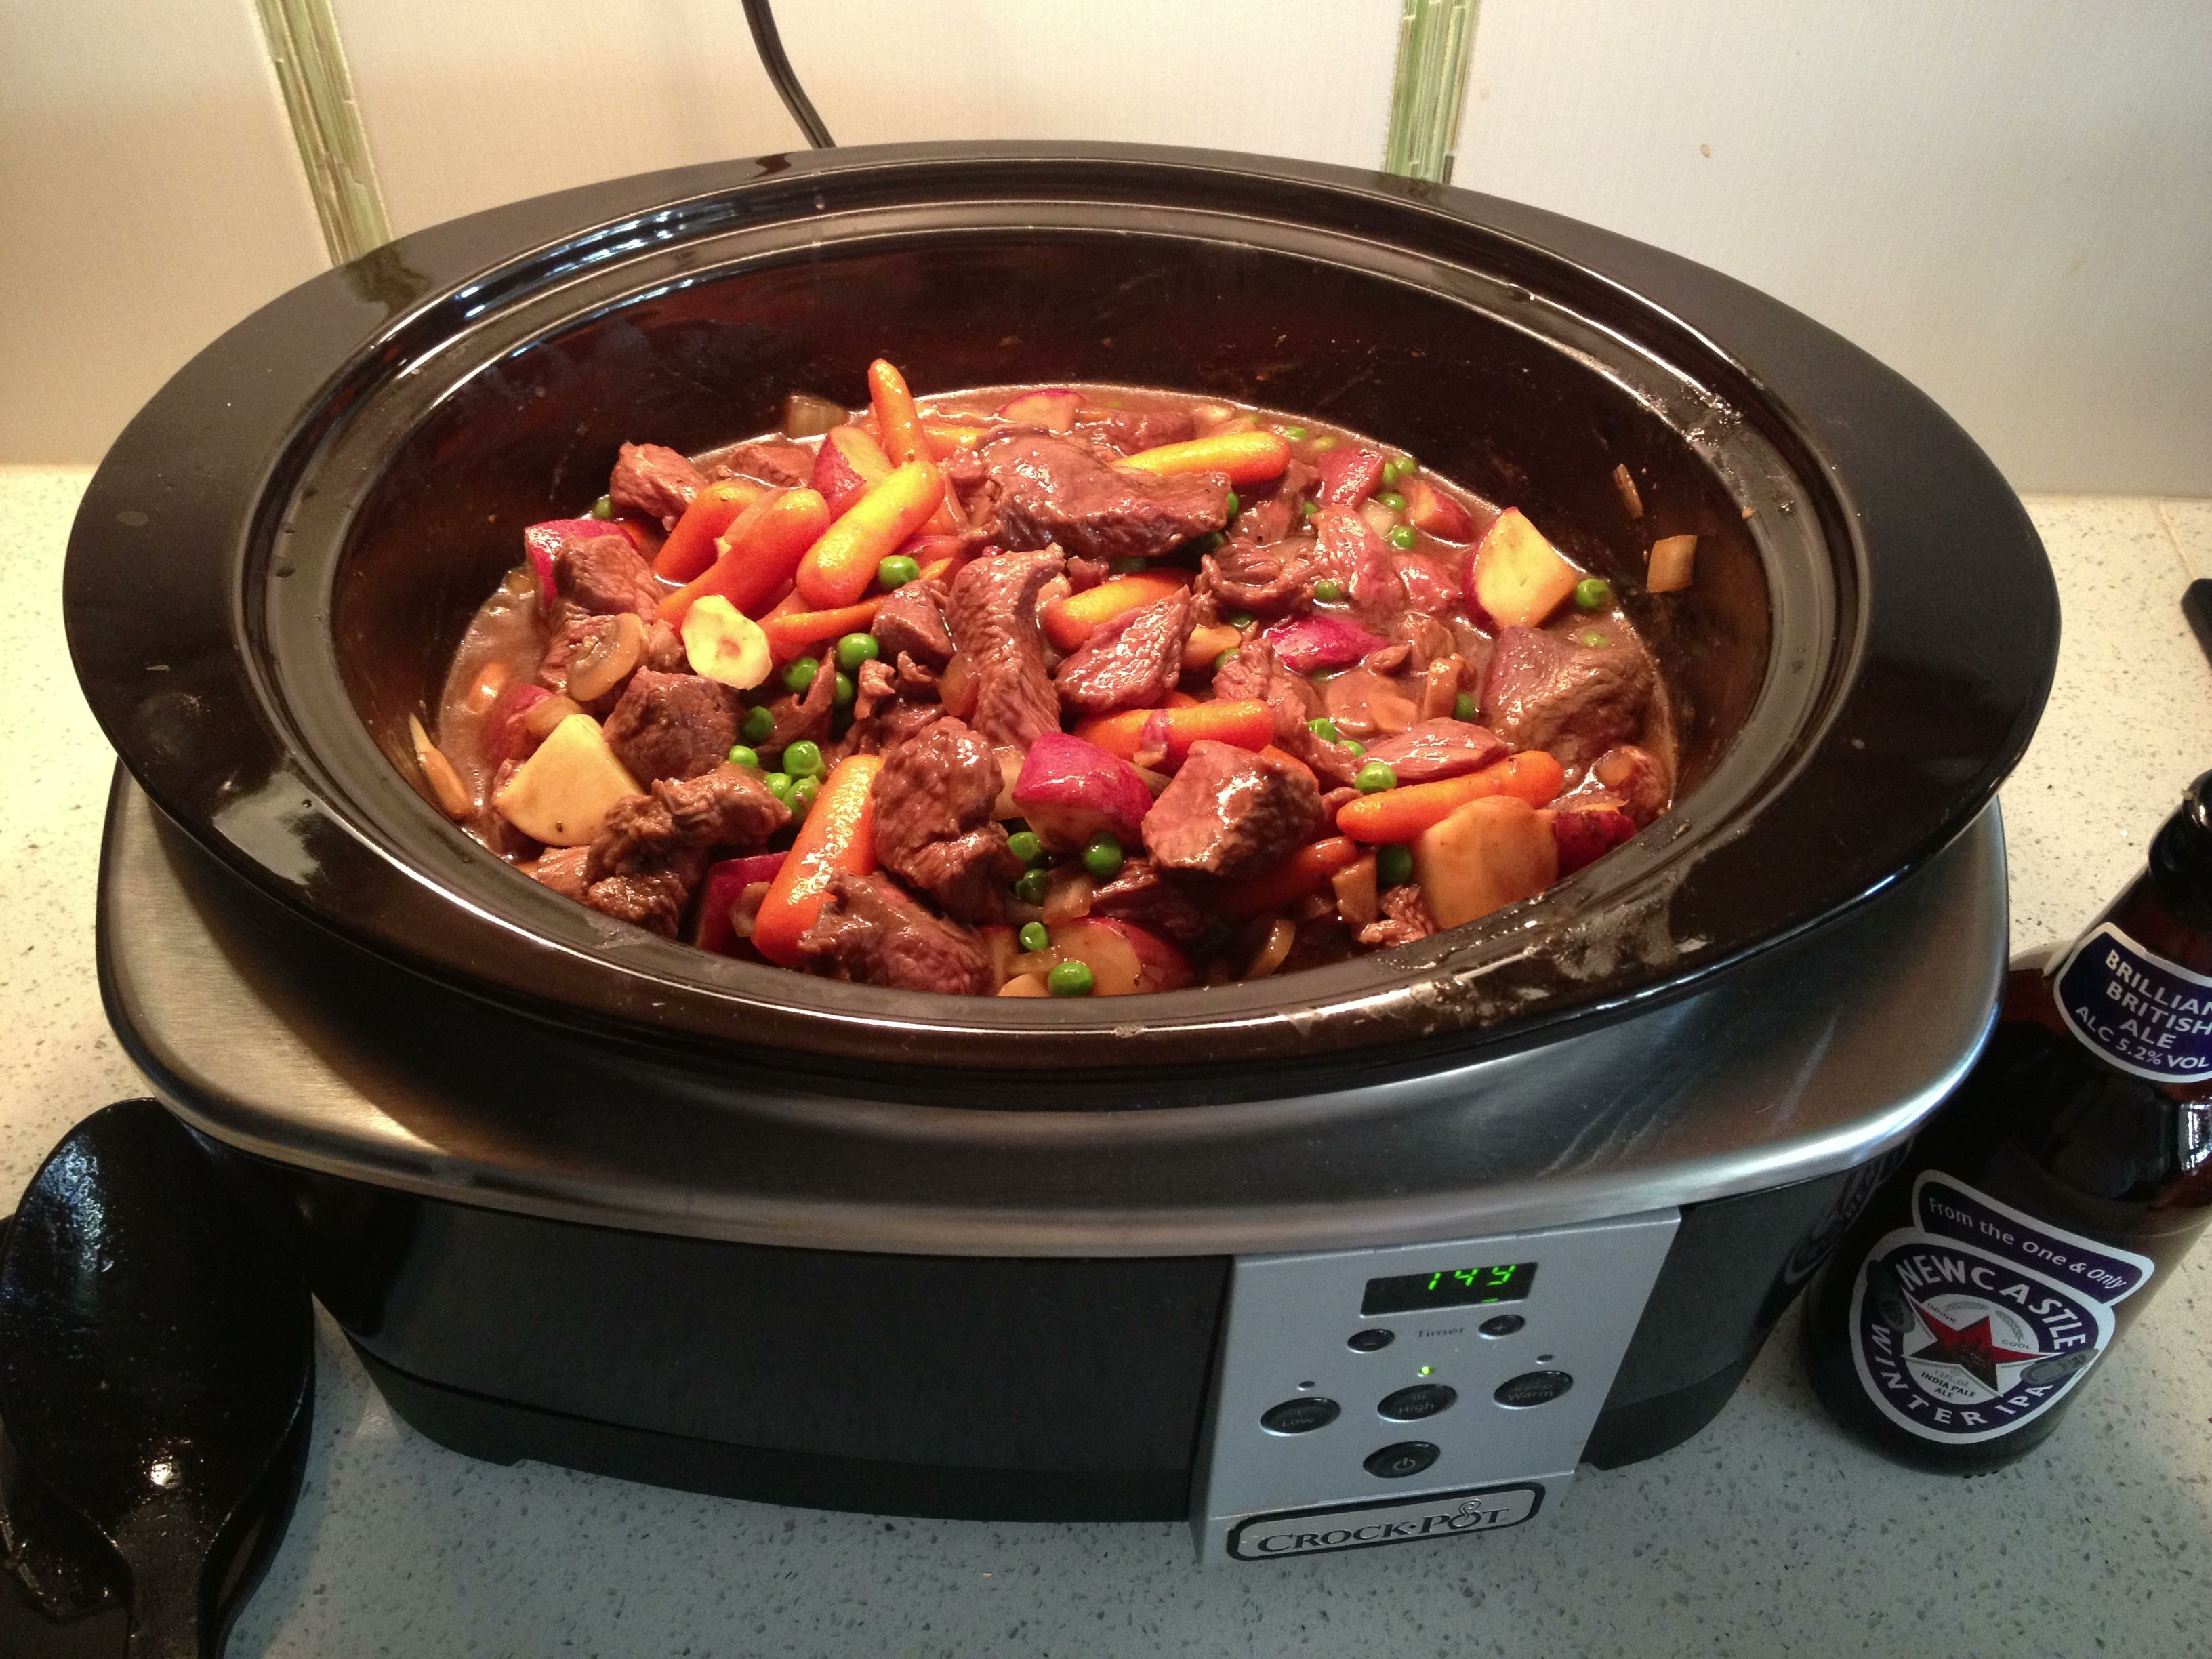 Beer Beef Crock Pot Stew Just Put A Bottle Or Can Of Beer 12oz In The Crock Pot Then Add A Packet Of The Beef S Beef Stew With Beer Recipes Crockpot